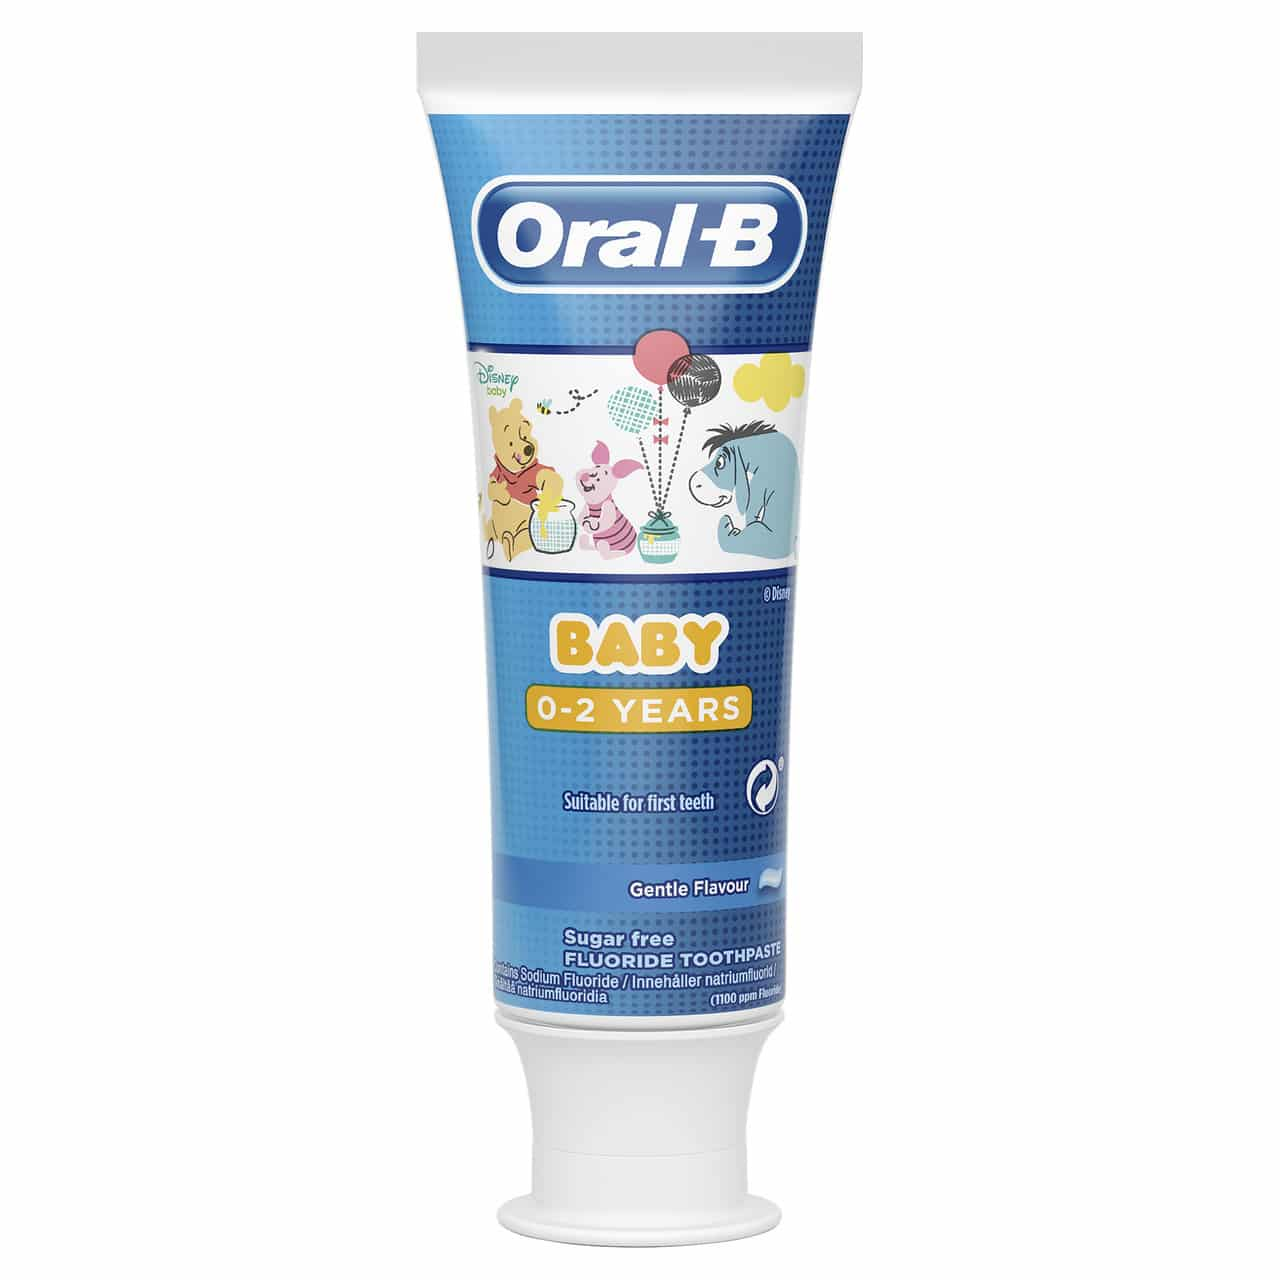 ORAL B TOOTHPASTE BABY 0-2YRS POOH (75ML)